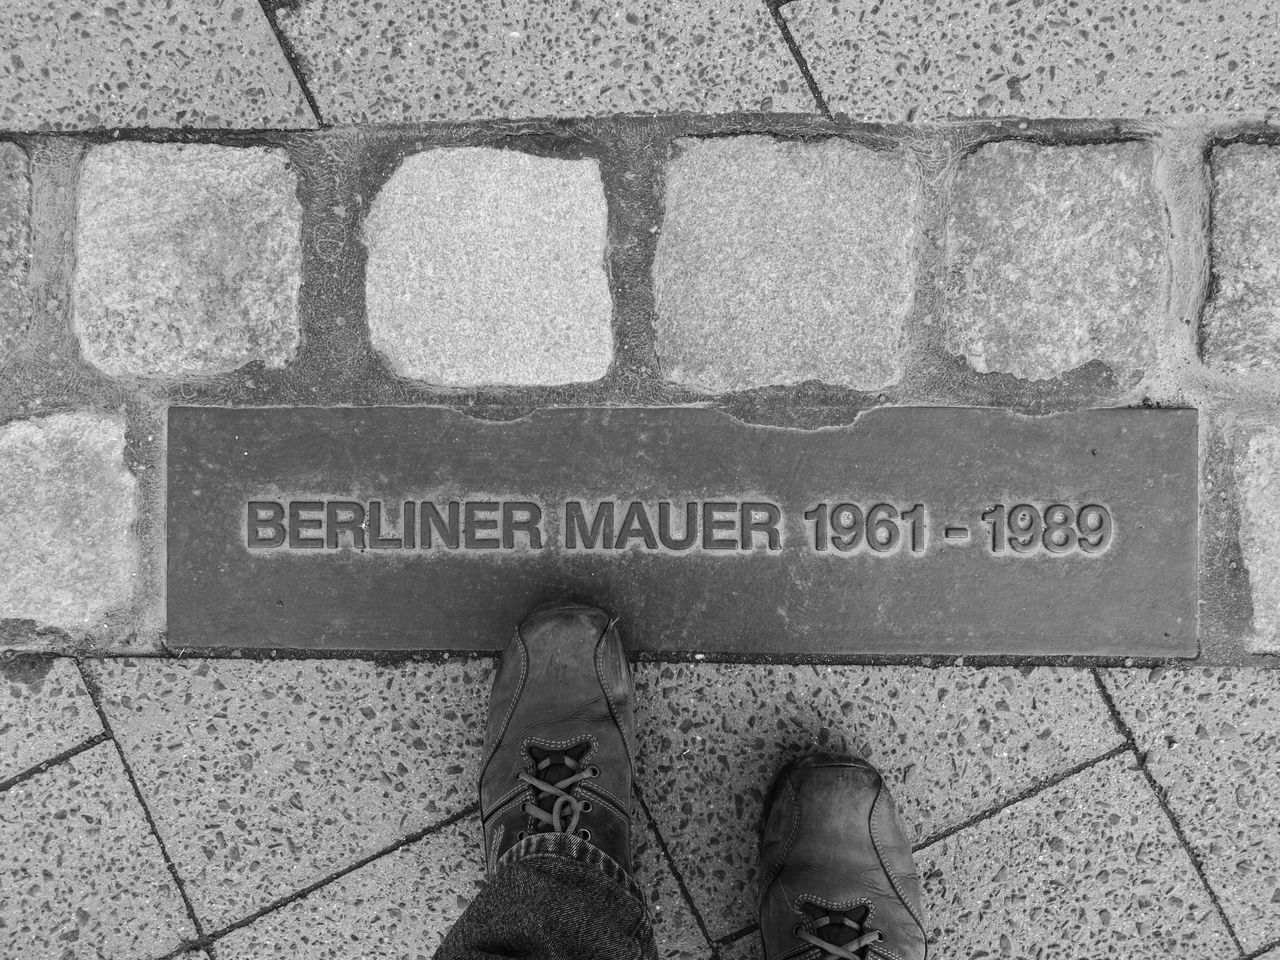 Berlin Berlin Photography Berliner Ansichten Berliner Mauer Day Human Body Part Human Foot Human Leg Looking Down Low Section One Person Outdoors Personal Perspective Shoe Standing Text